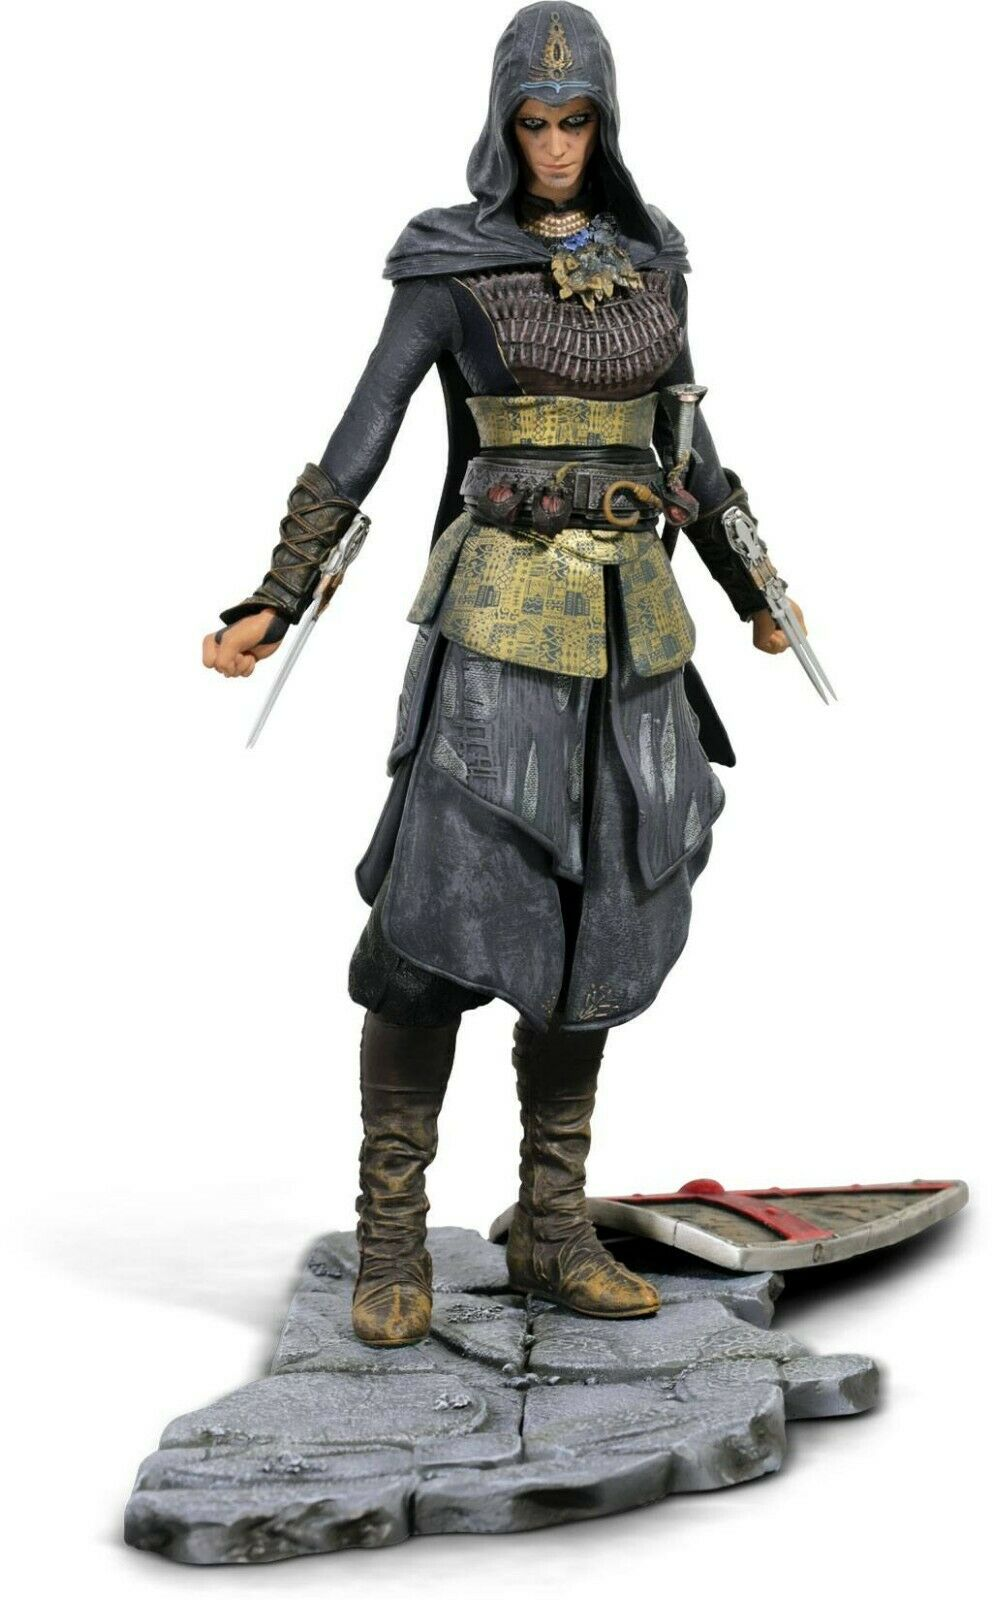 MARIA (ARIANE LABED)  STATUE ASSASSIN'S CREED UBI-COLLECTIBLES 23 CM  alta qualità generale